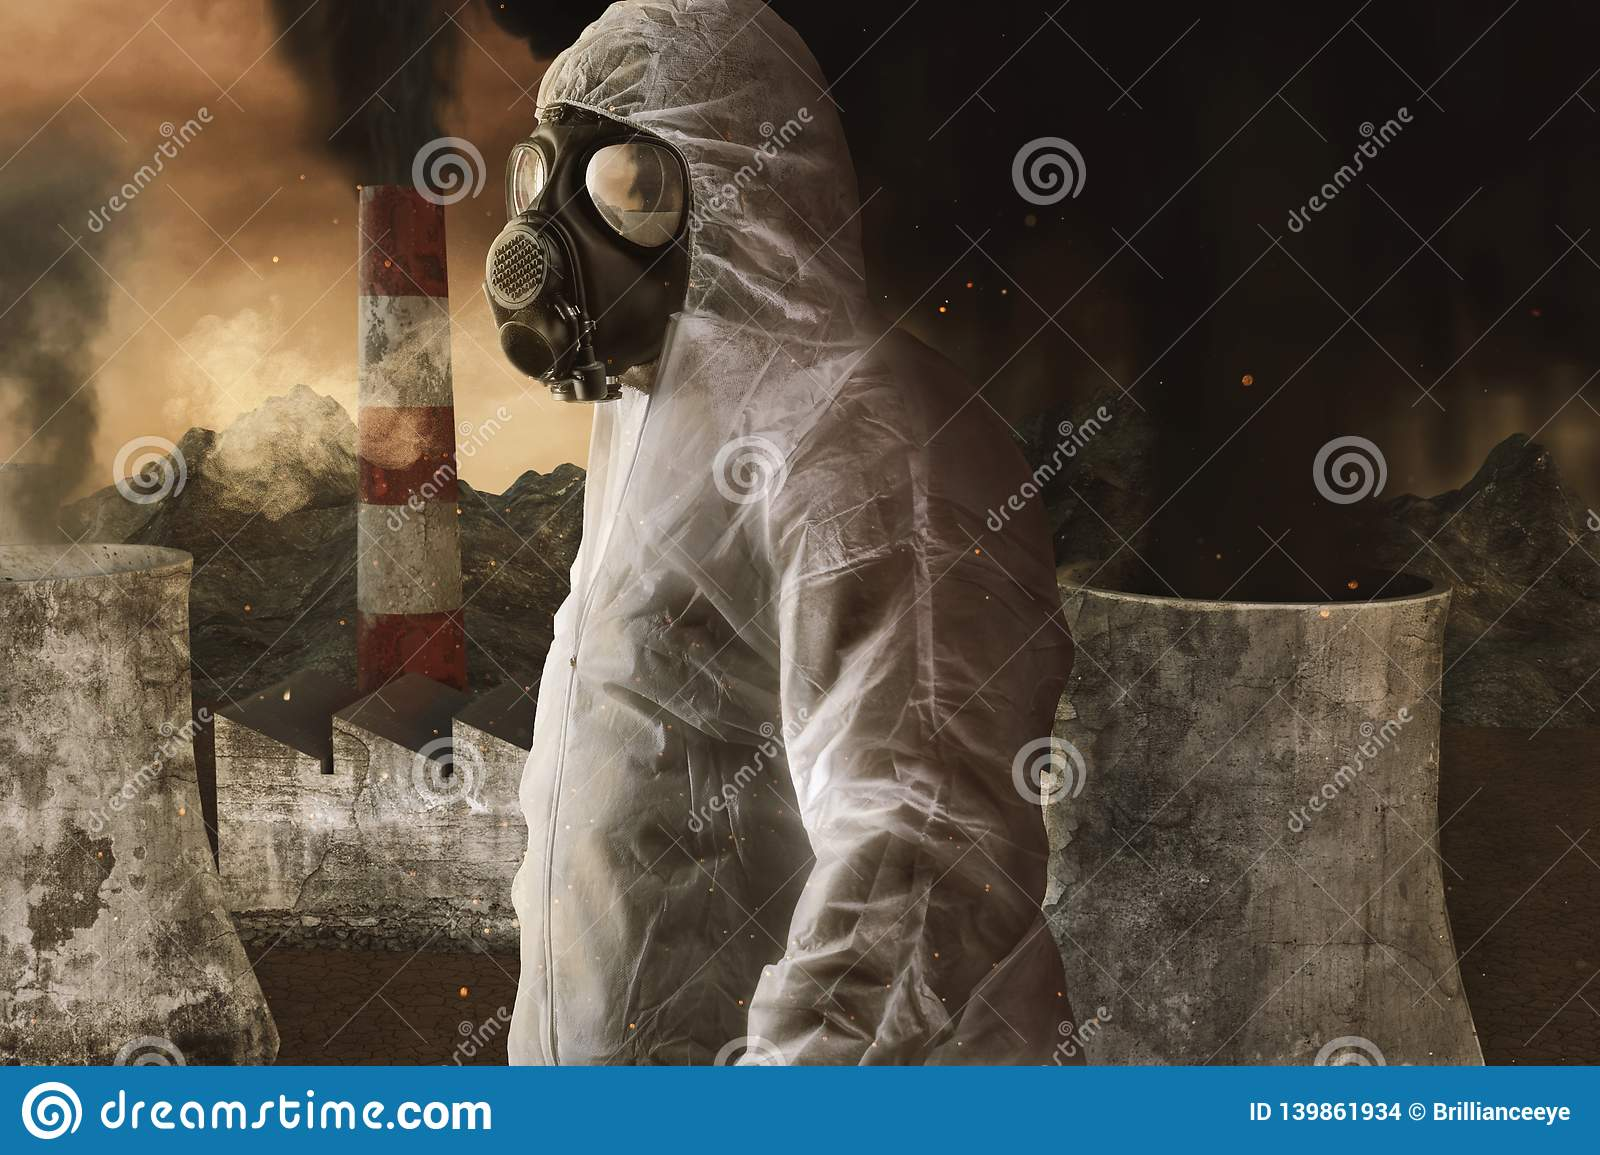 Survivor with white overall and gas mask in front of incineration plant and apocalyptic environment